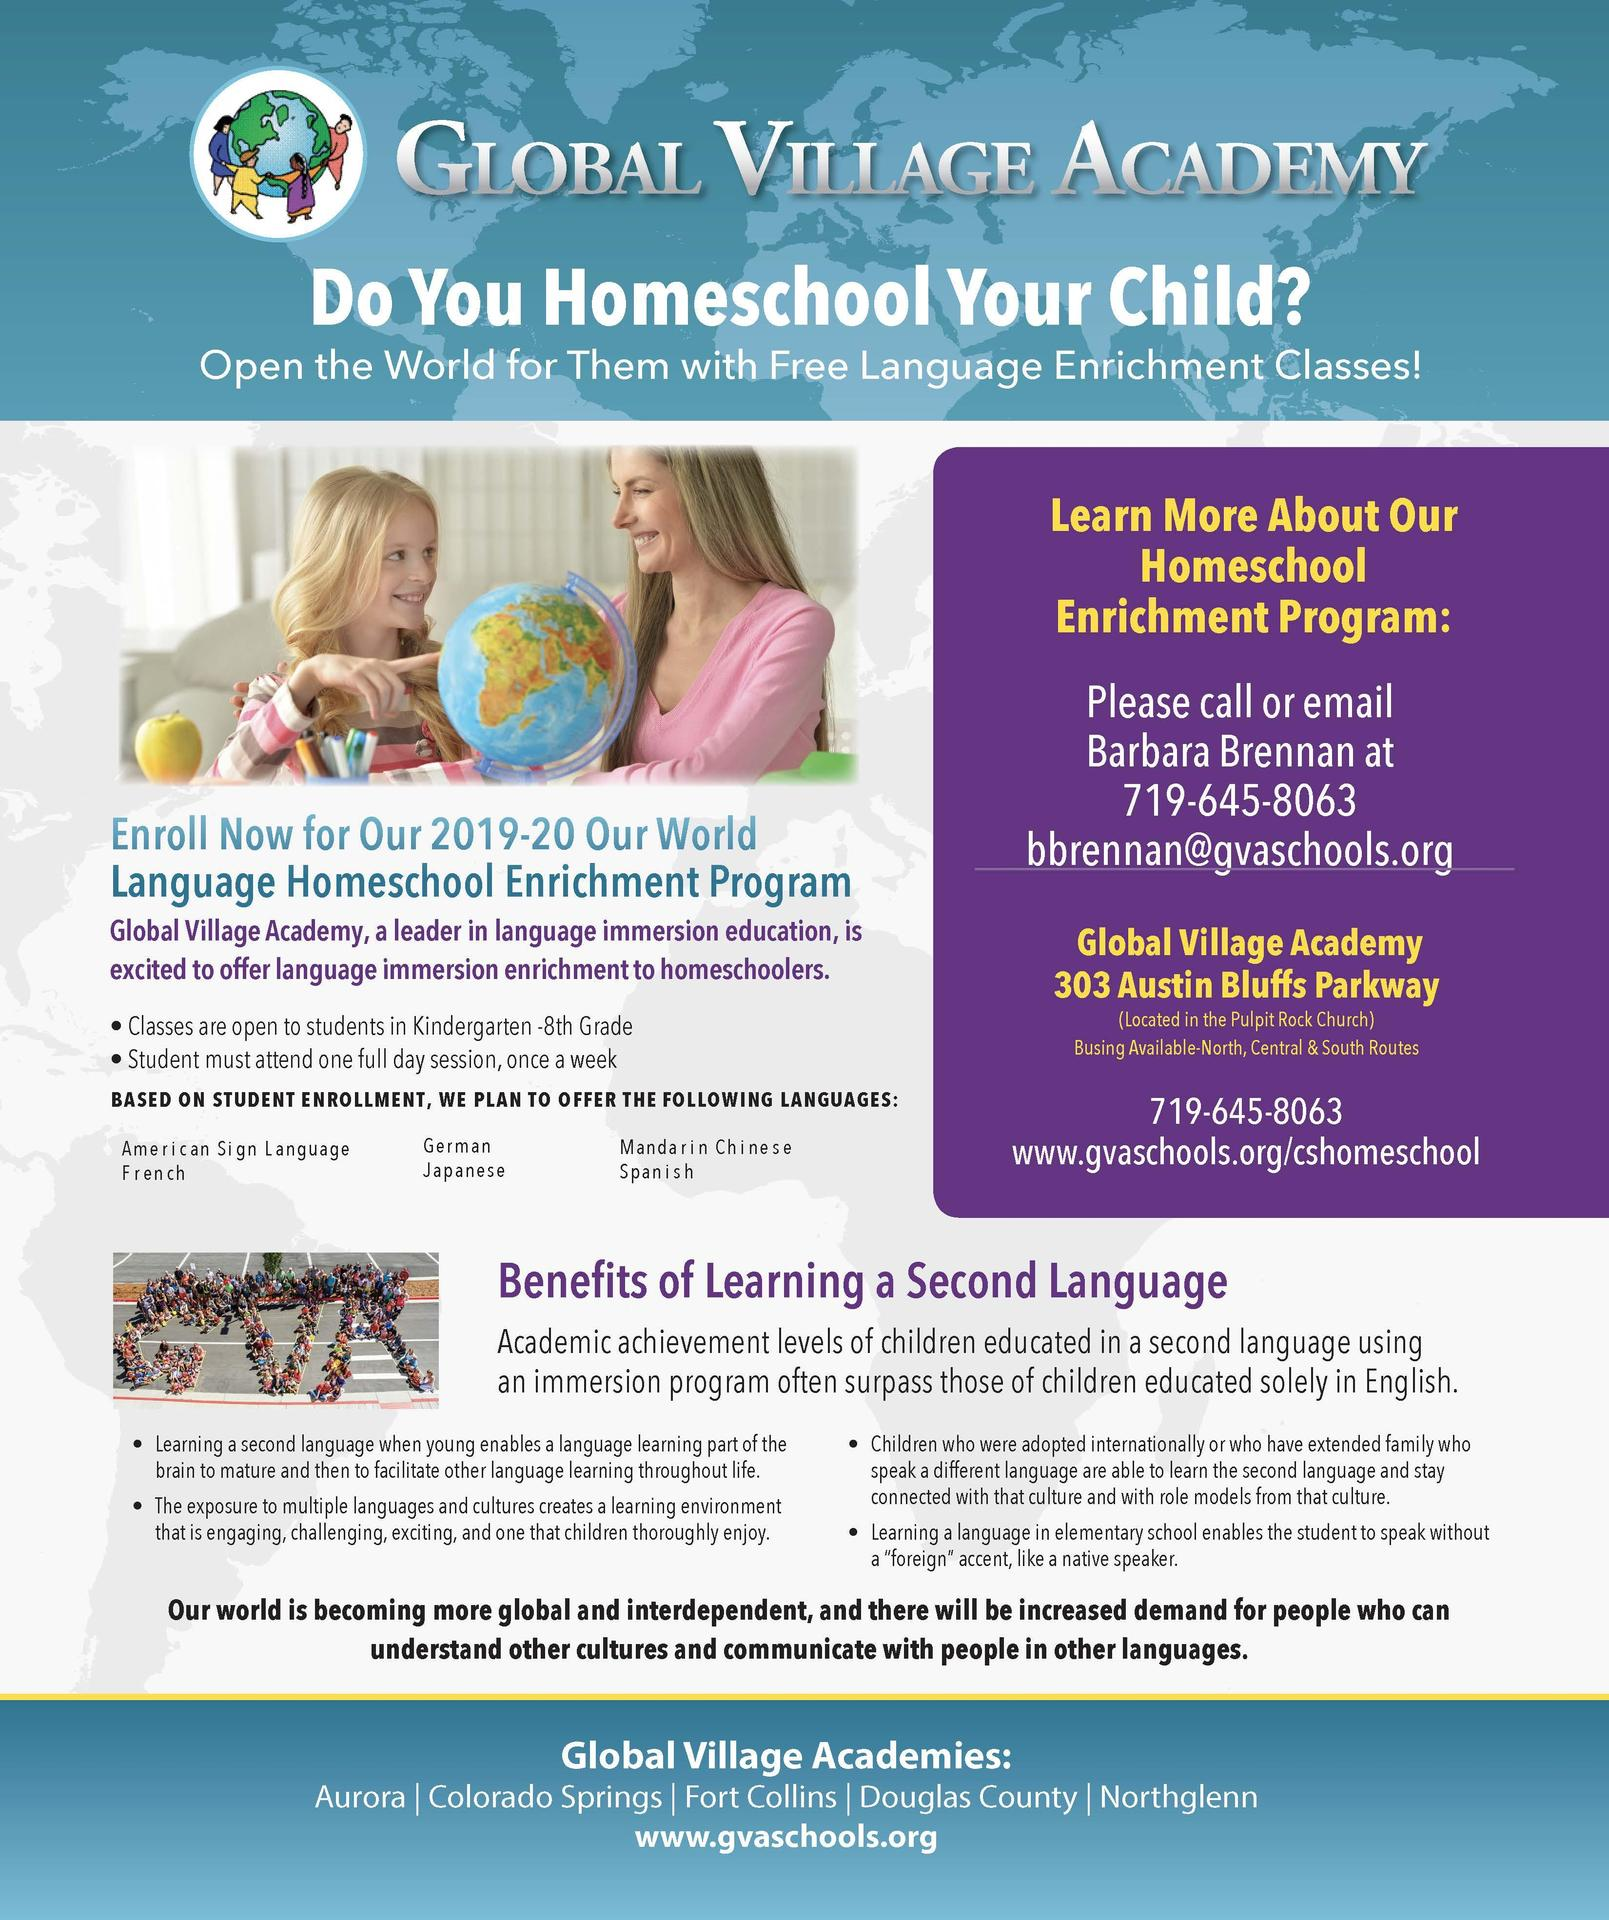 homeschool information that can be found on homeschool flyer pdf